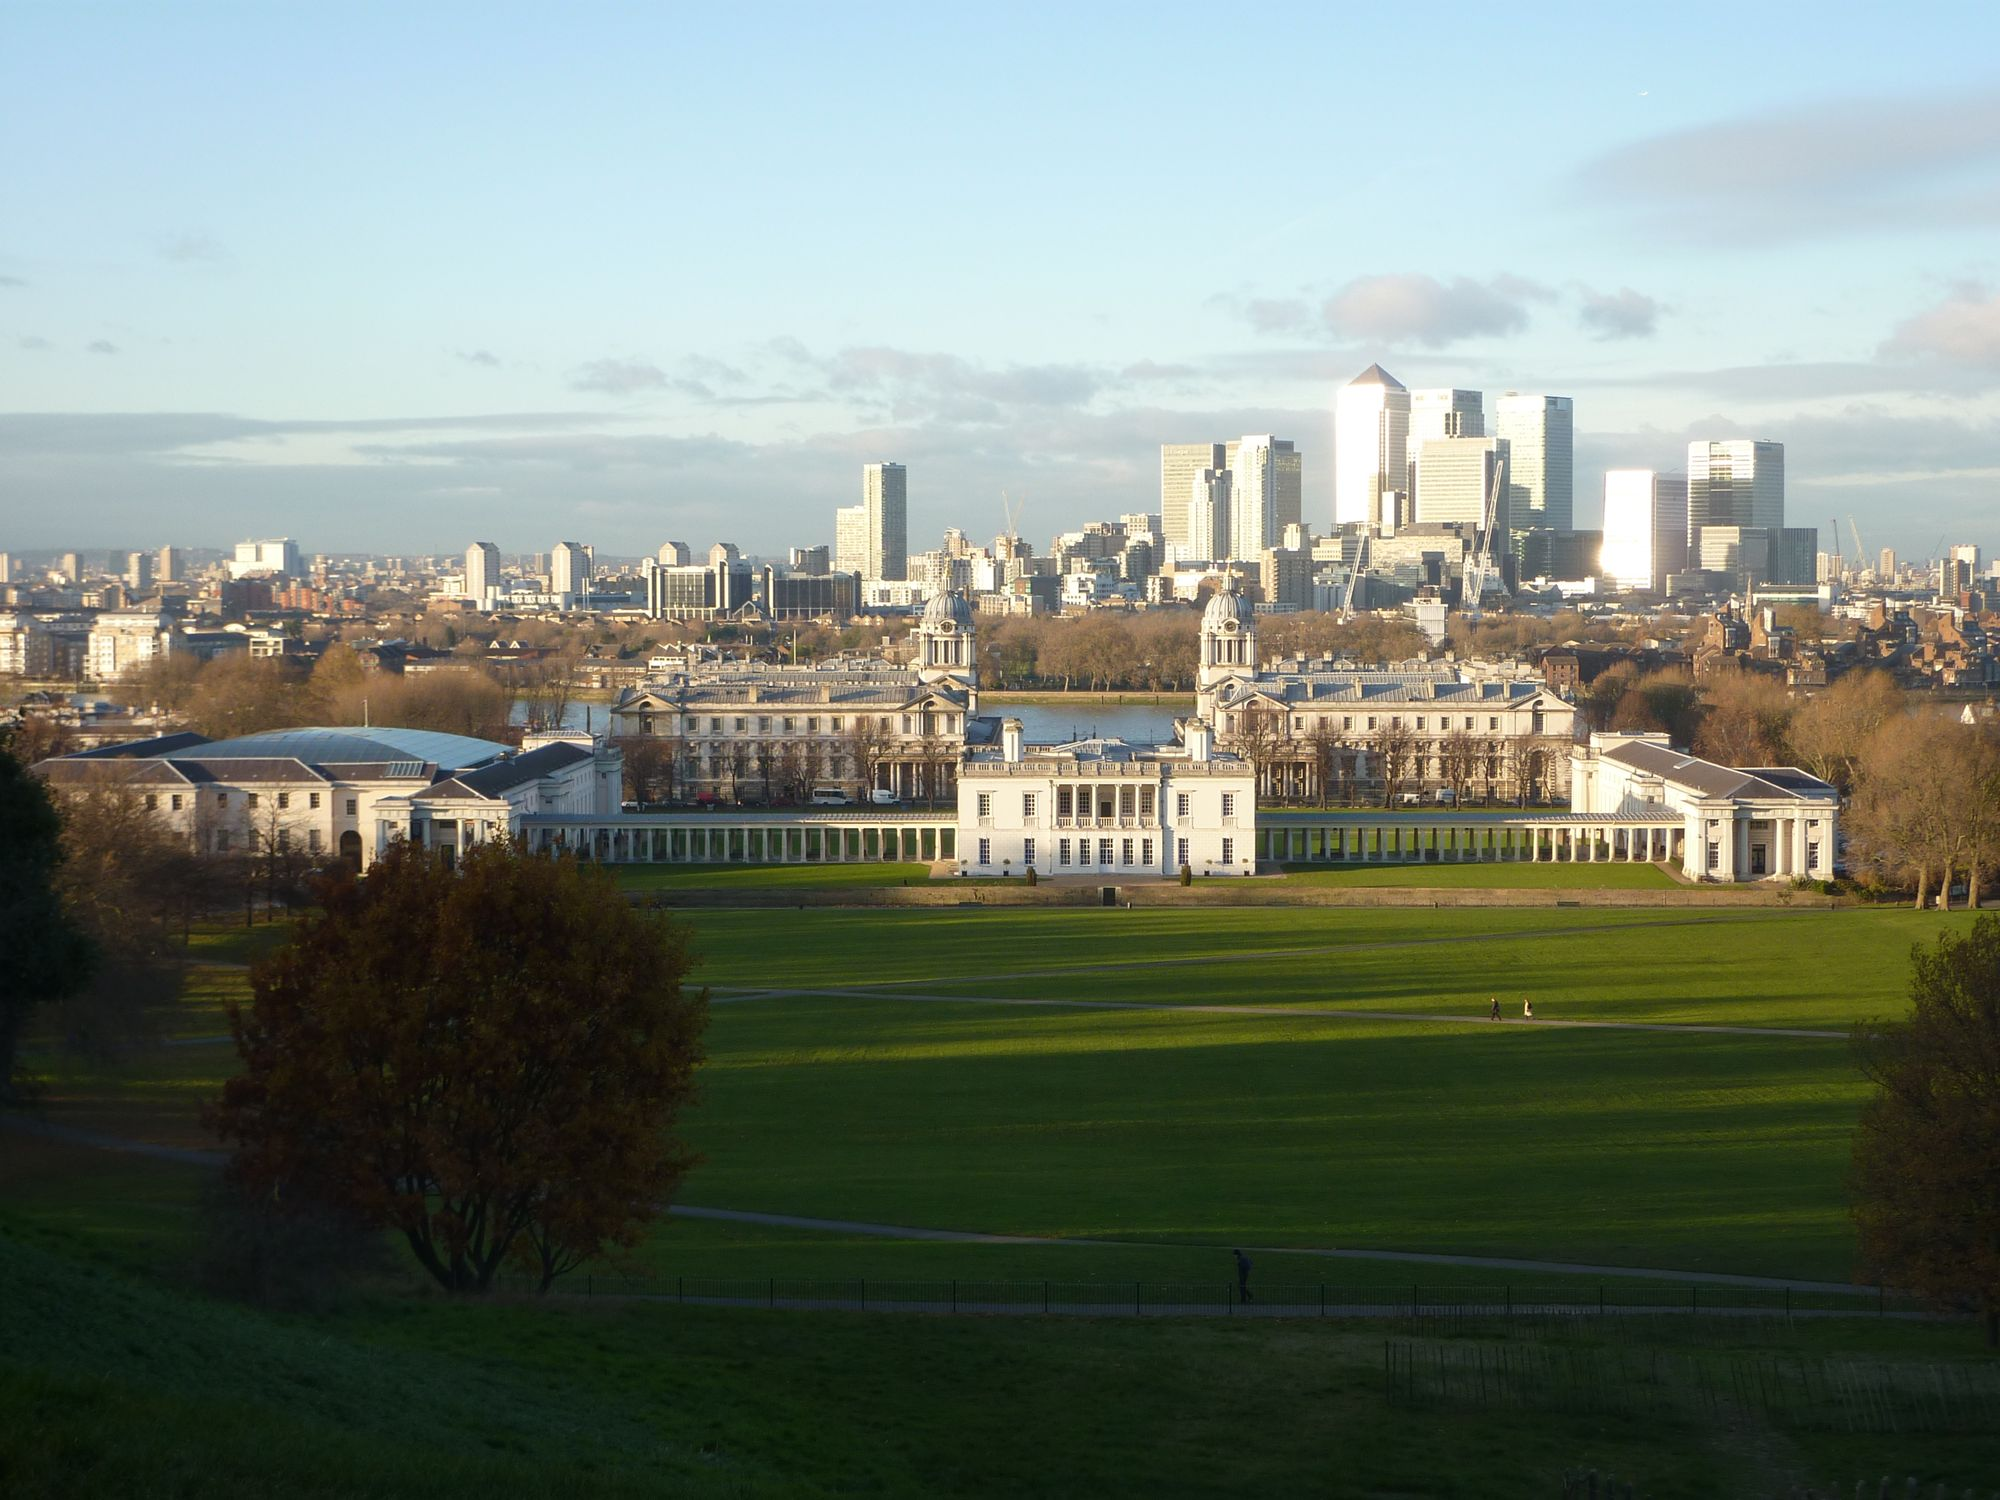 The Cool Places guide to historic Greenwich and picturesque Blackheath